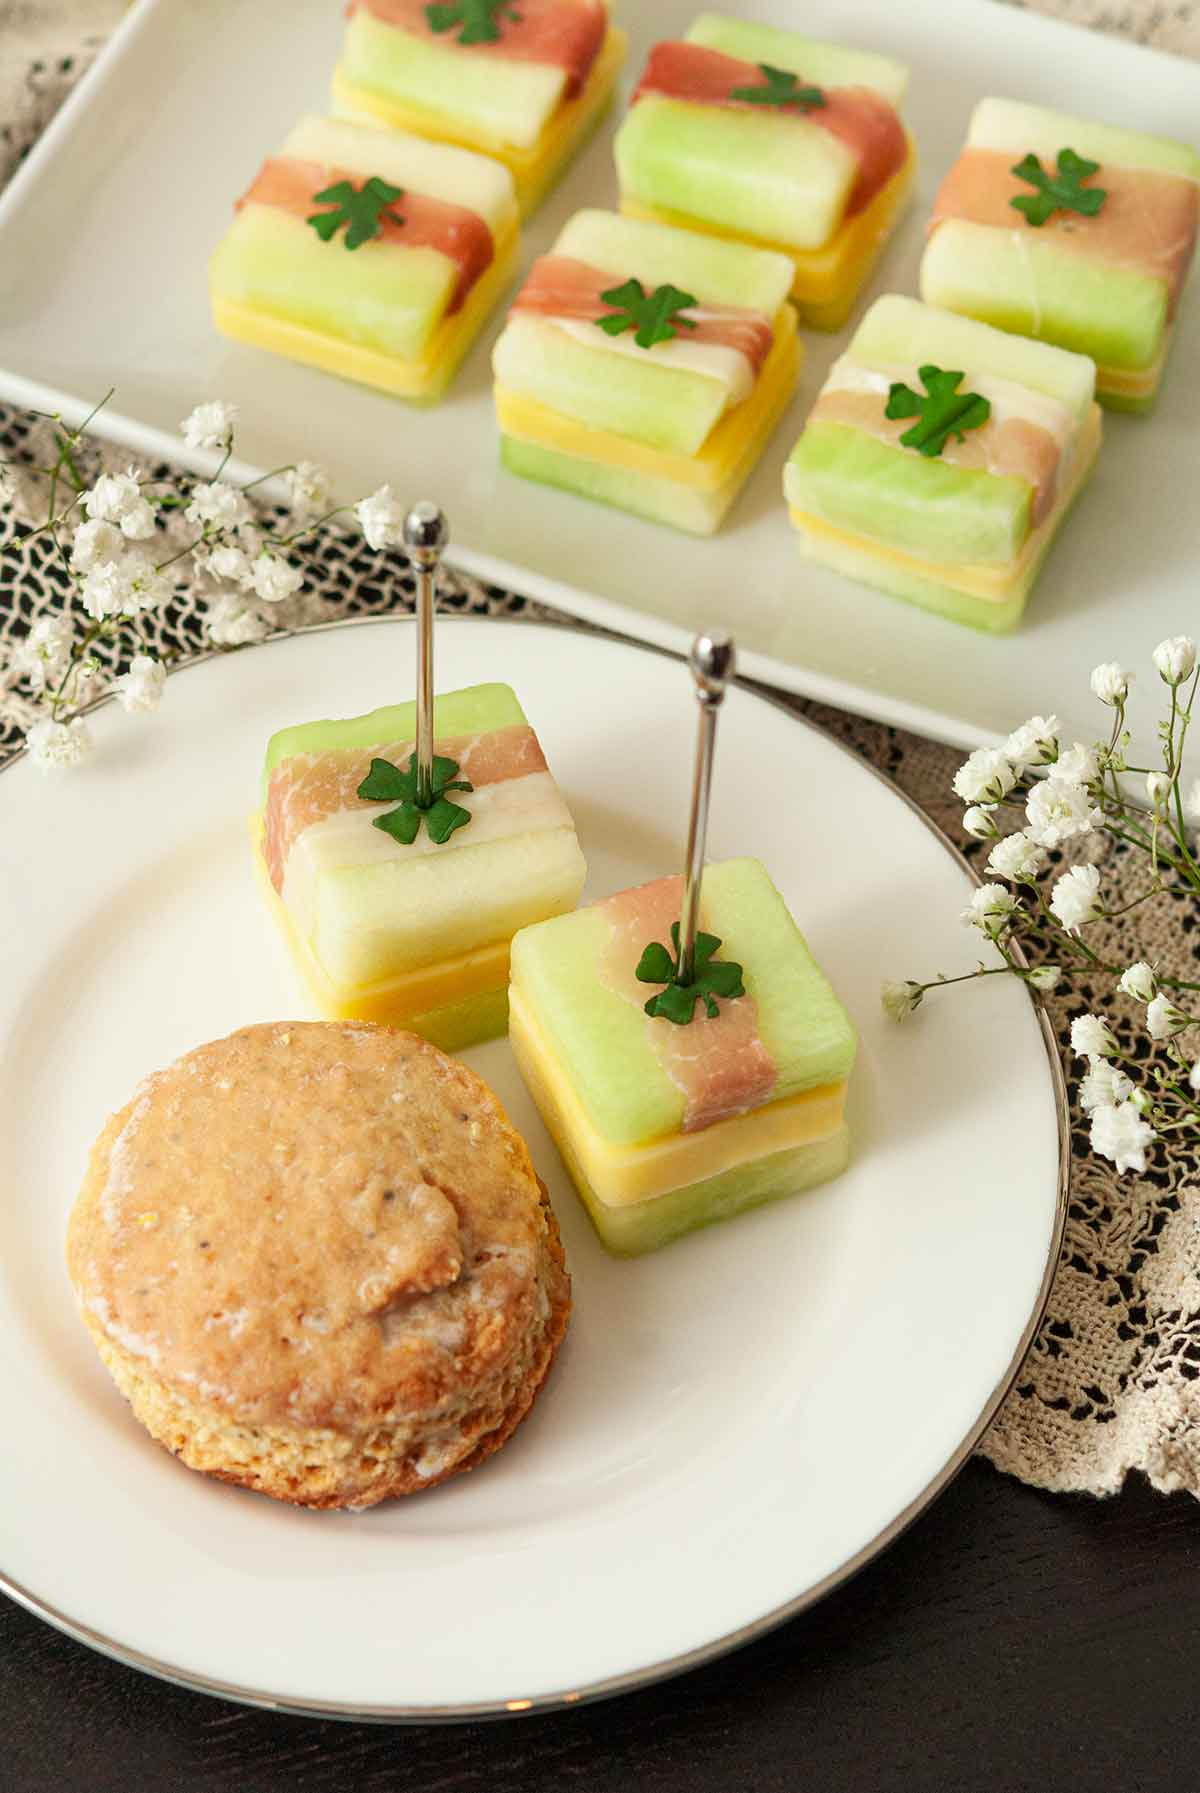 2 melon appetizers on a plate with a scone in front of 6 more melon appetizers on a plate.